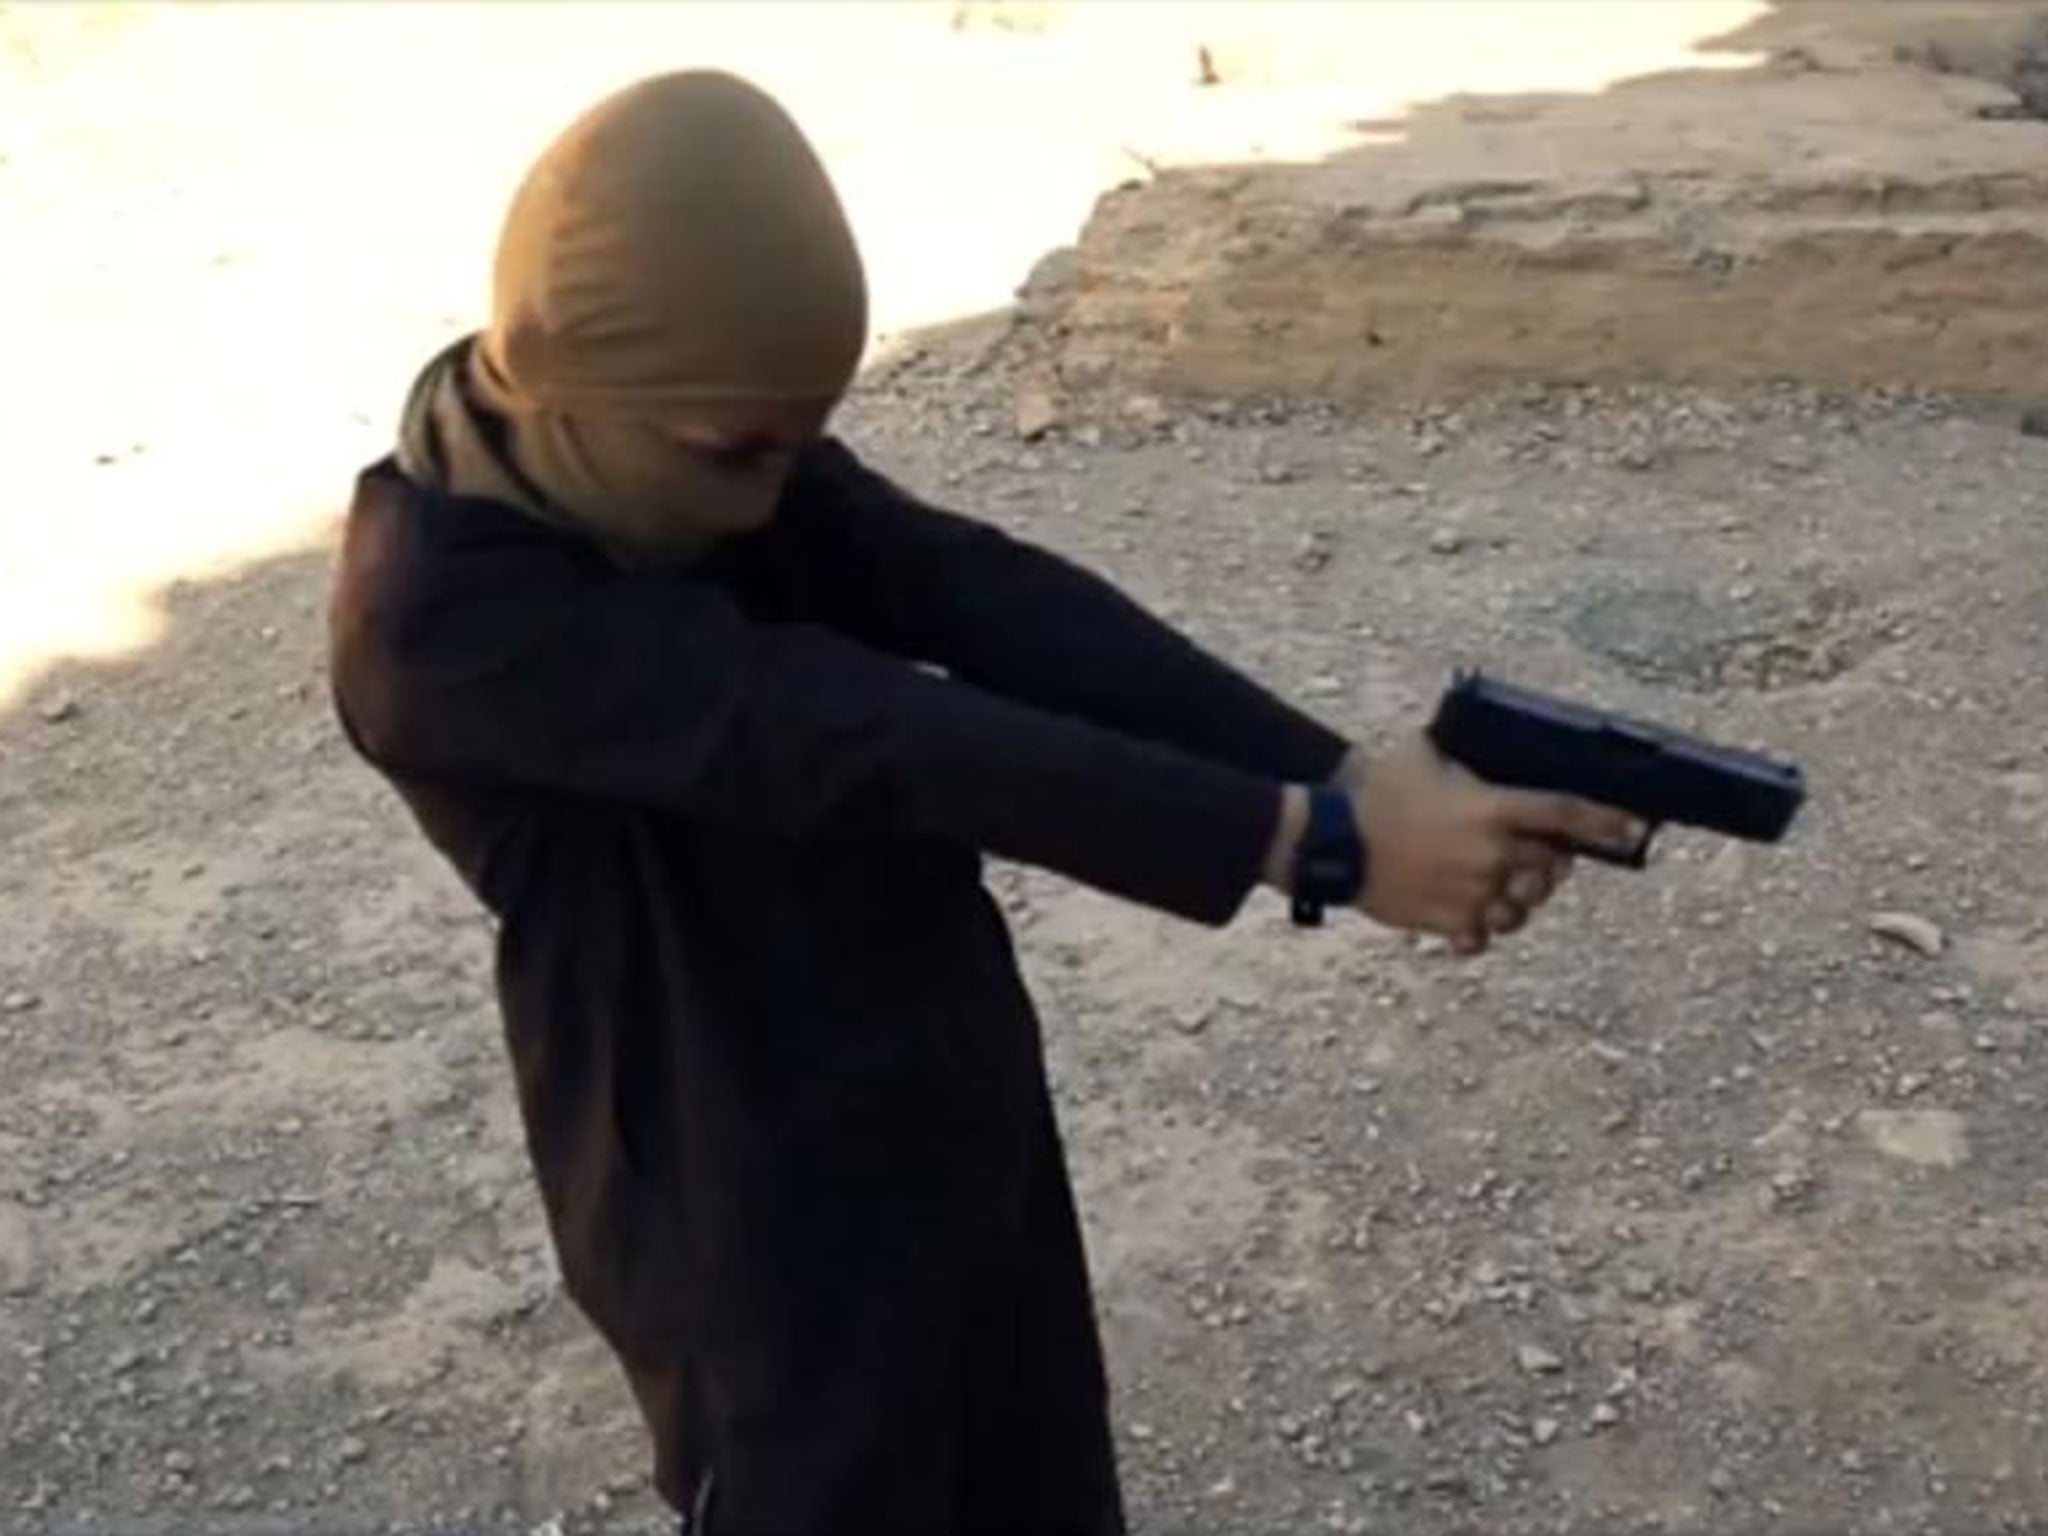 Isis uses young boys to hunt down and kill prisoners in ruined Syrian castle for gory propaganda